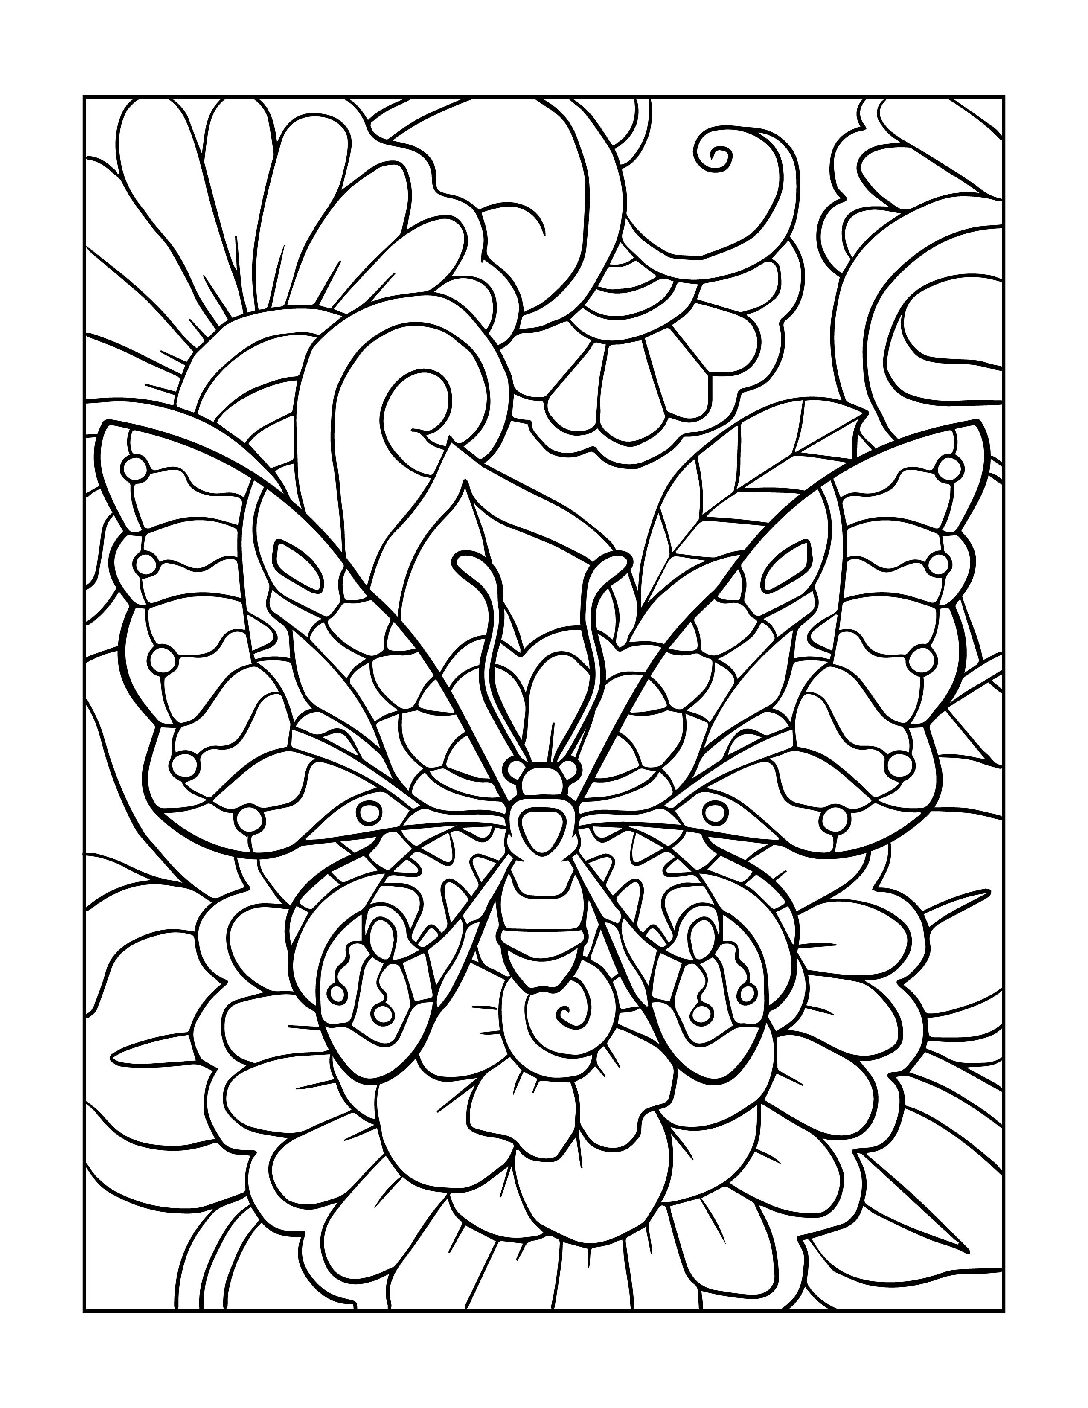 Coloring-Pages_Butterflies-4-01-1-pdf Free Printable Butterfly Colouring Pages